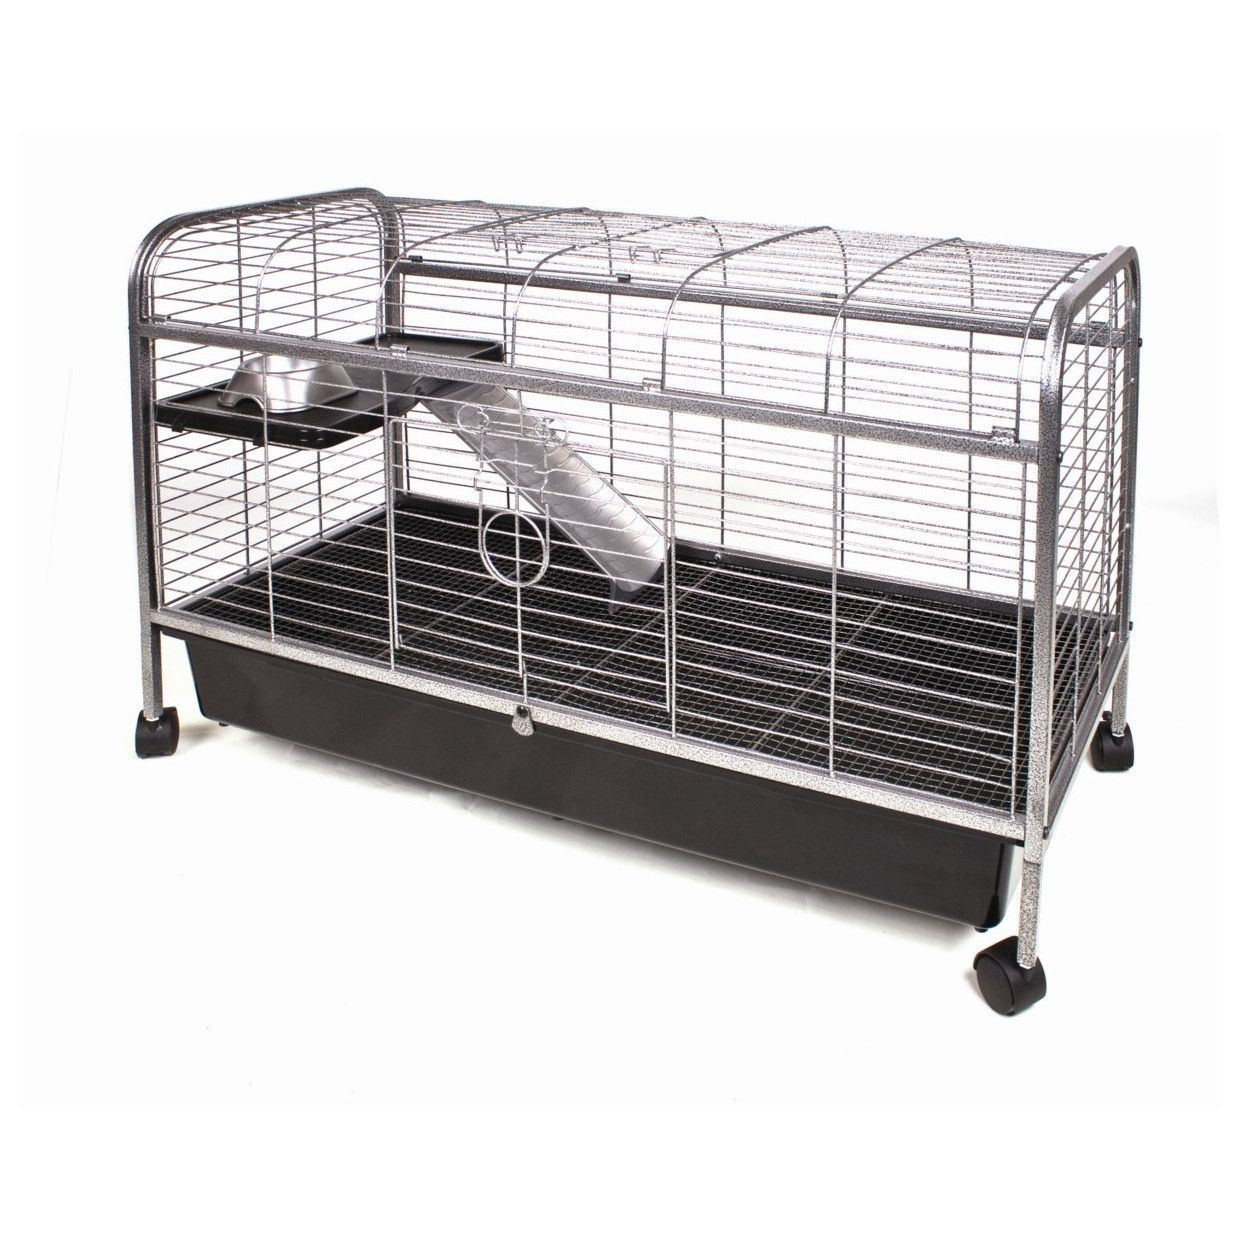 Living Room Series Rabbit Cage With Pull Out Pan. For dwarf rabbits ...